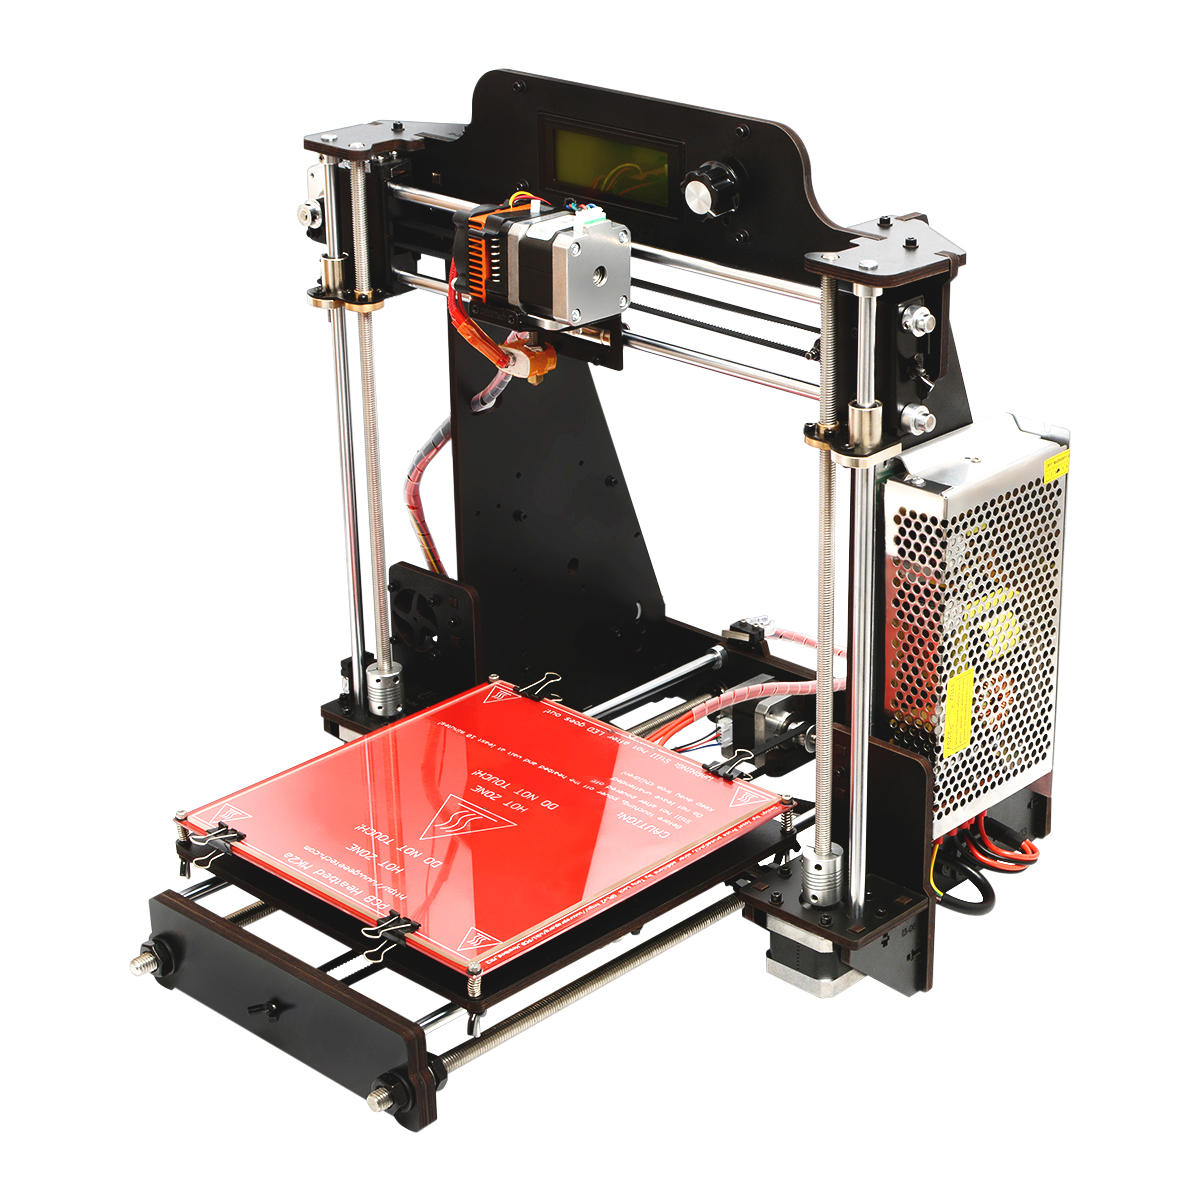 Geeetech® Prusa I3 Pro W DIY 3D Printer 200x200x180mm Printing Size 1 75mm  0 3mm Nozzle